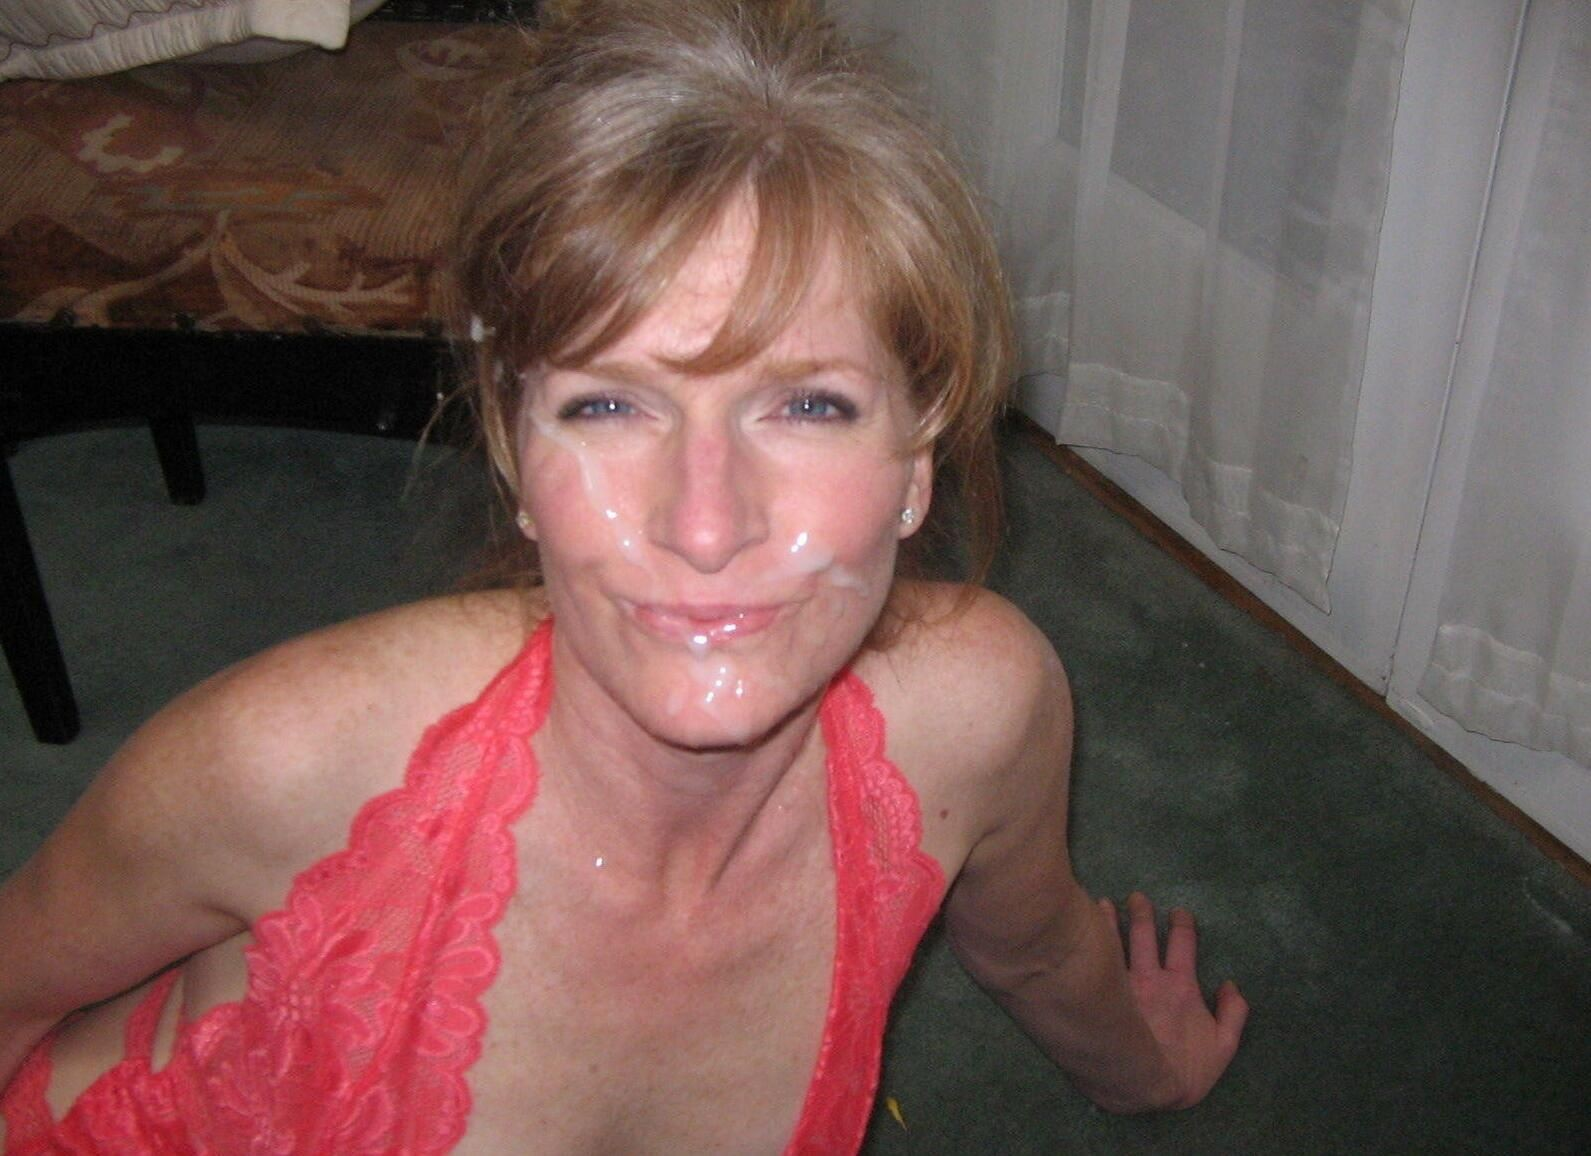 Homemade Mature Porn Mature Homemade Porn Photo Facials: www.older-mature.net/homemade-mature-porn/82368.html